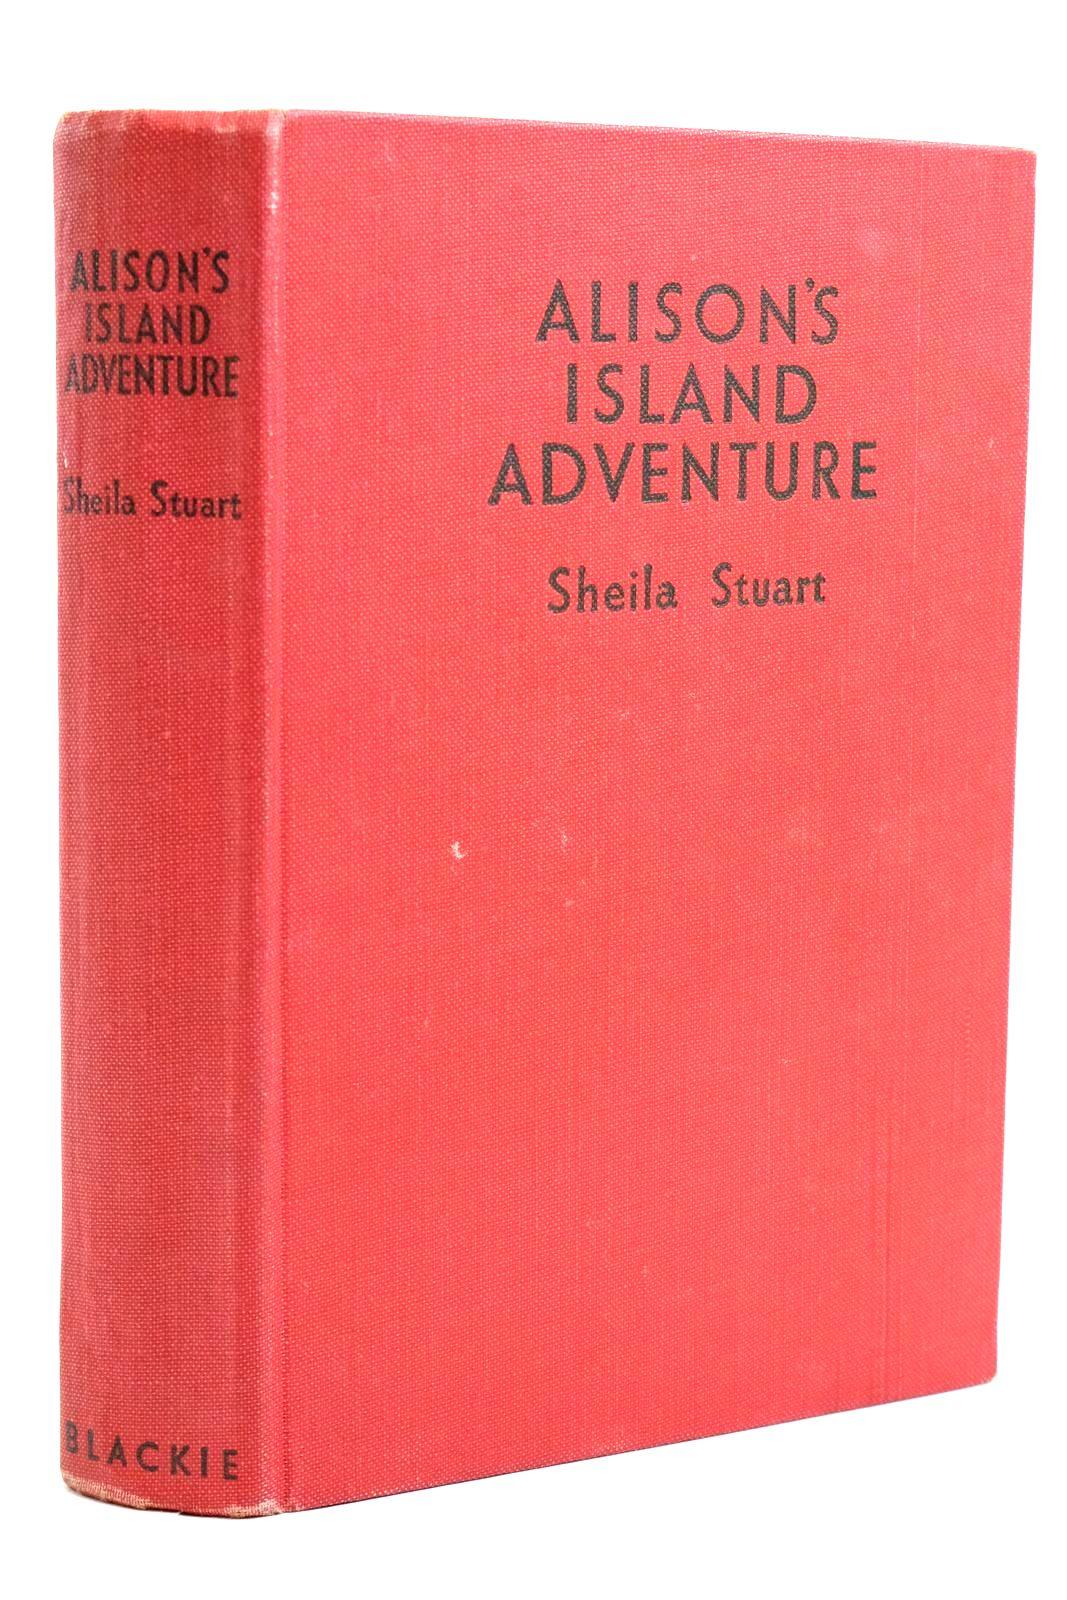 Photo of ALISON'S ISLAND ADVENTURE written by Stuart, Sheila illustrated by Dunlop, Gilbert published by Blackie & Son Ltd. (STOCK CODE: 1320709)  for sale by Stella & Rose's Books